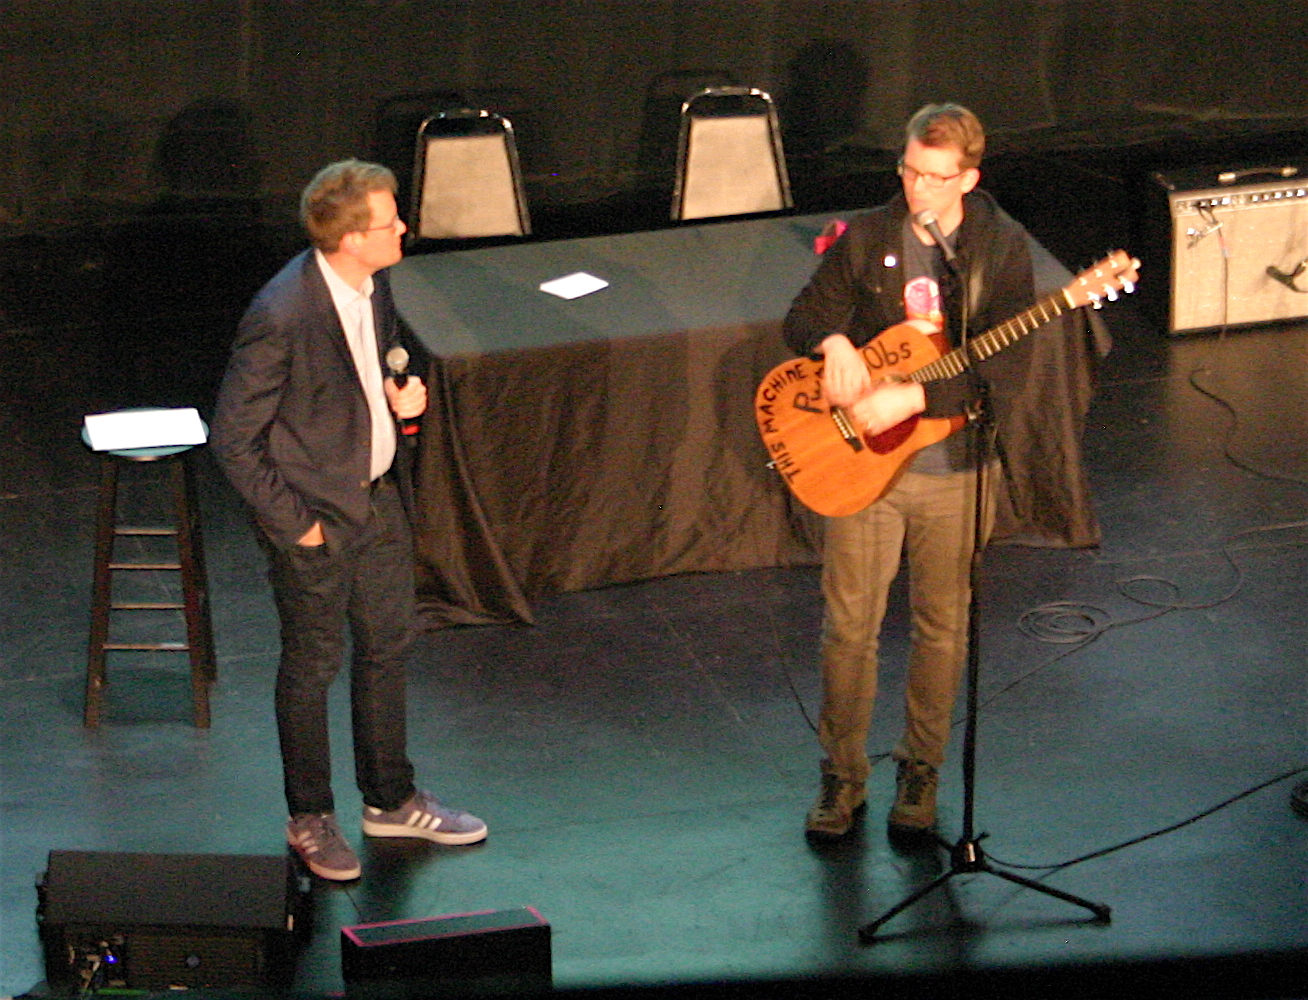 John Green (left) and brother Hank Green on stage at Boston's Wilbur Theatre on Sept. 26, 2018, as part of the promotional tour for Hank's debut book,